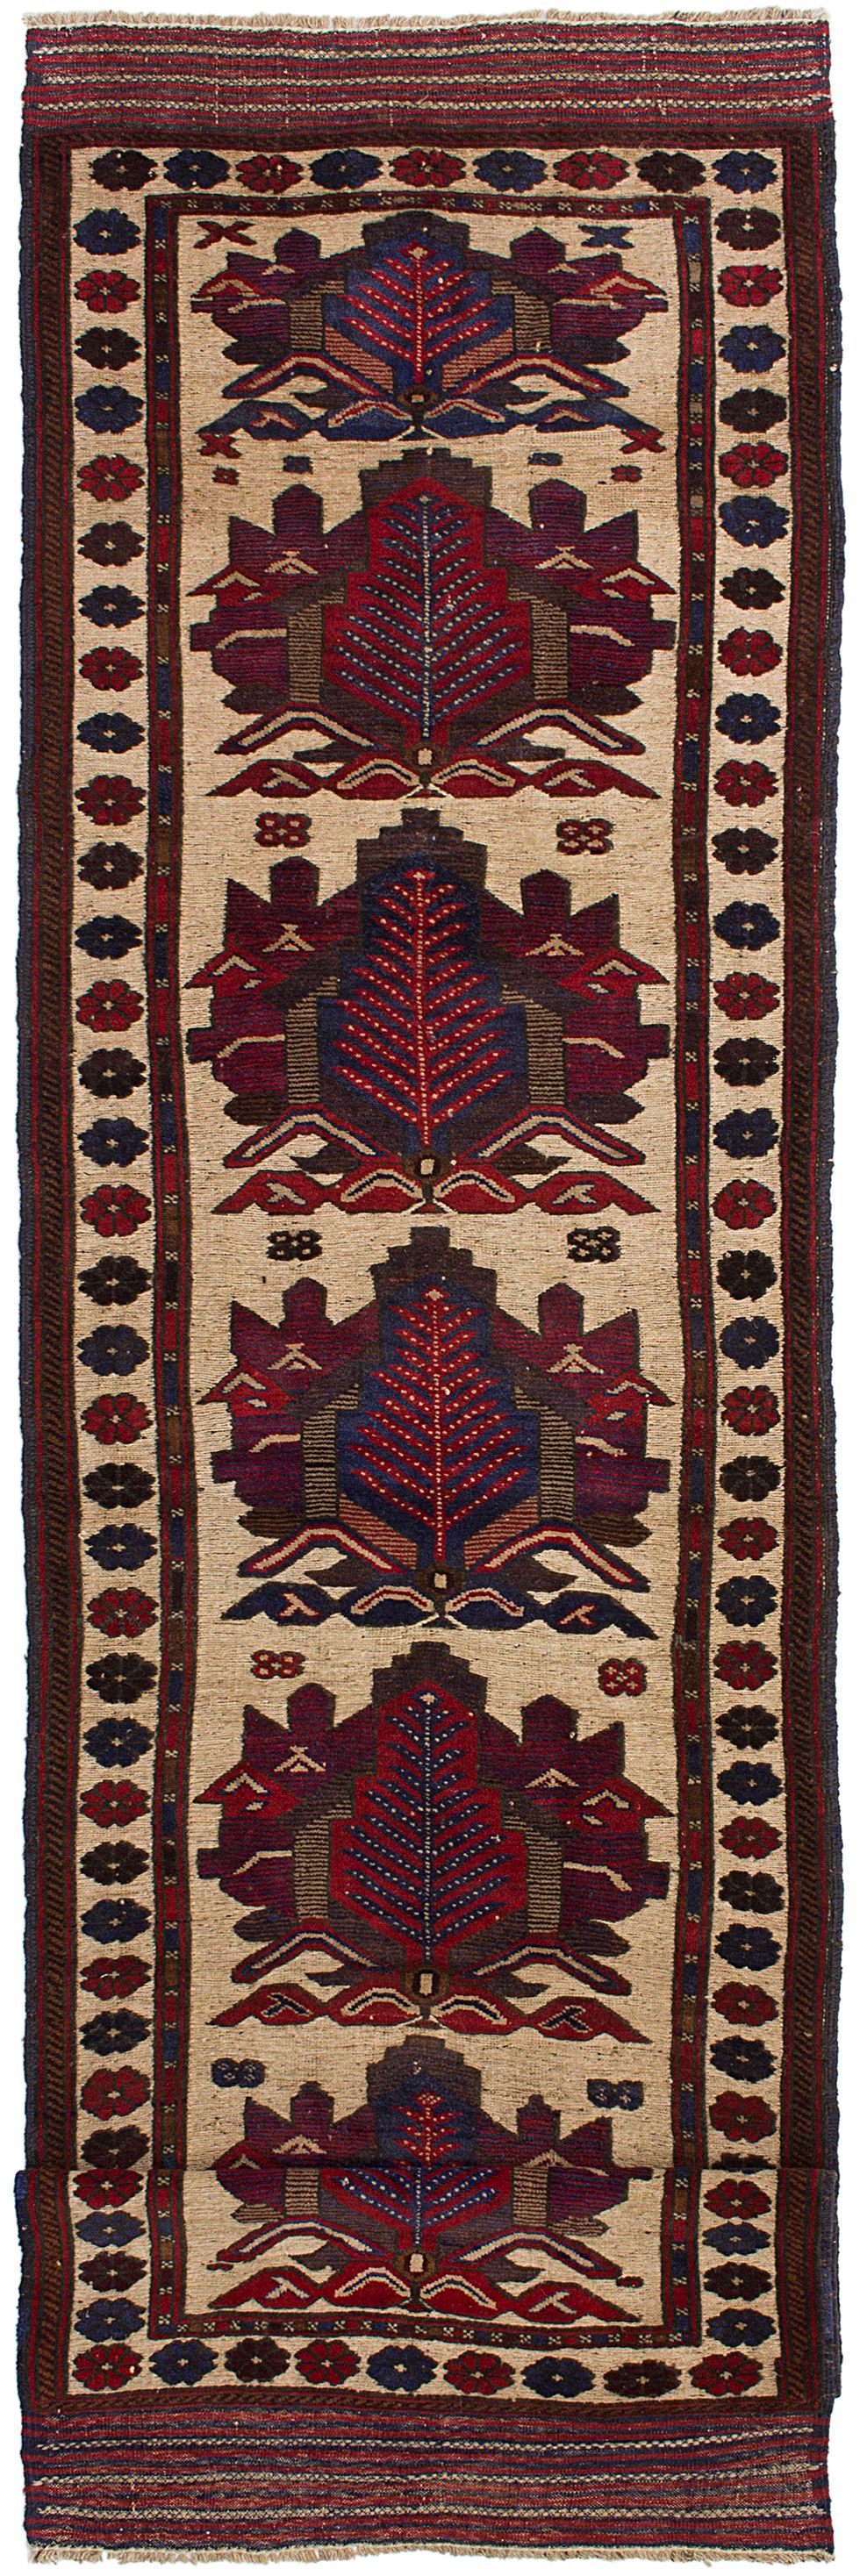 "Hand-knotted Tajik Caucasian Cream, Dark Red Wool Rug 2'10"" x 11'7"" Size: 2'10"" x 11'7"""